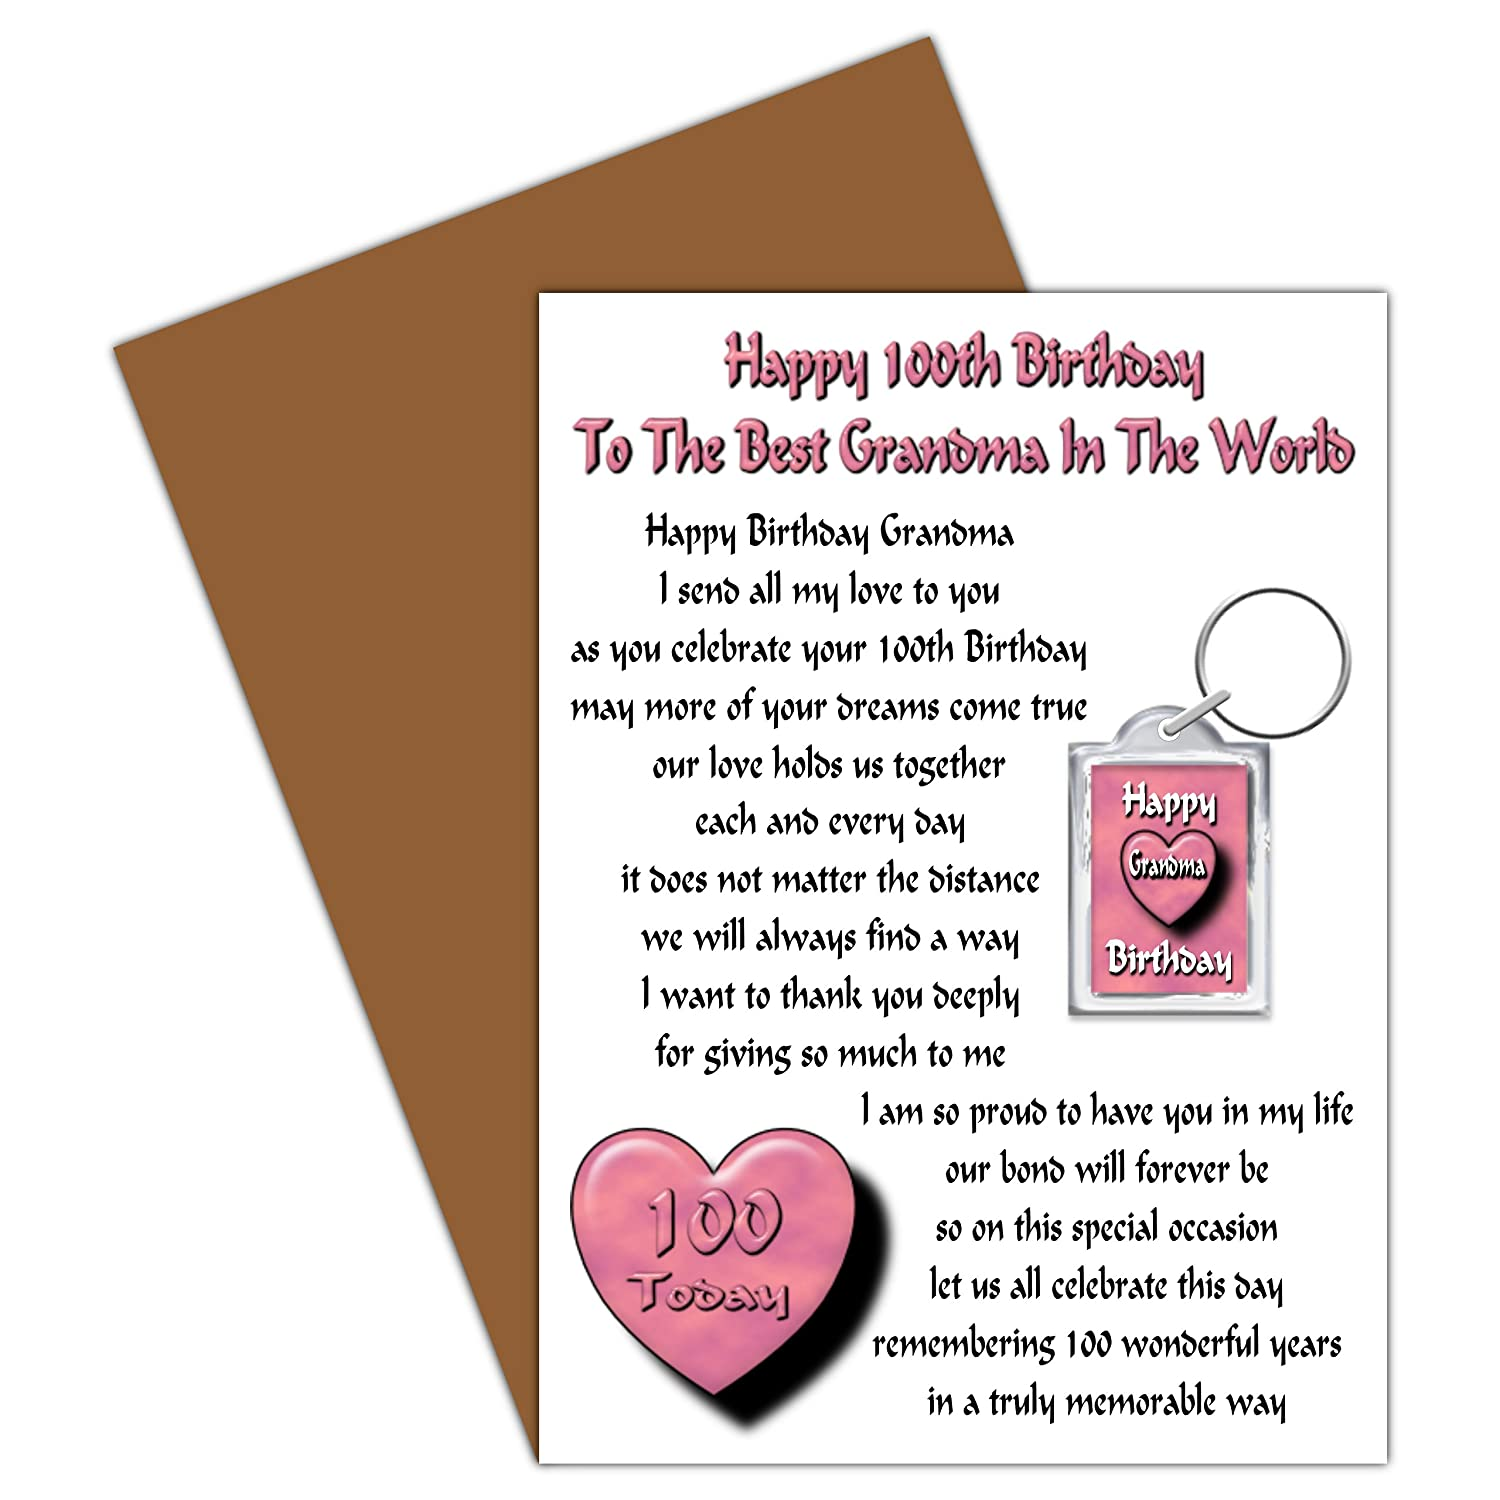 Grandma 100th happy birthday card with removable keyring gift grandma 100th happy birthday card with removable keyring gift verse from an adult 100 today amazon office products bookmarktalkfo Image collections